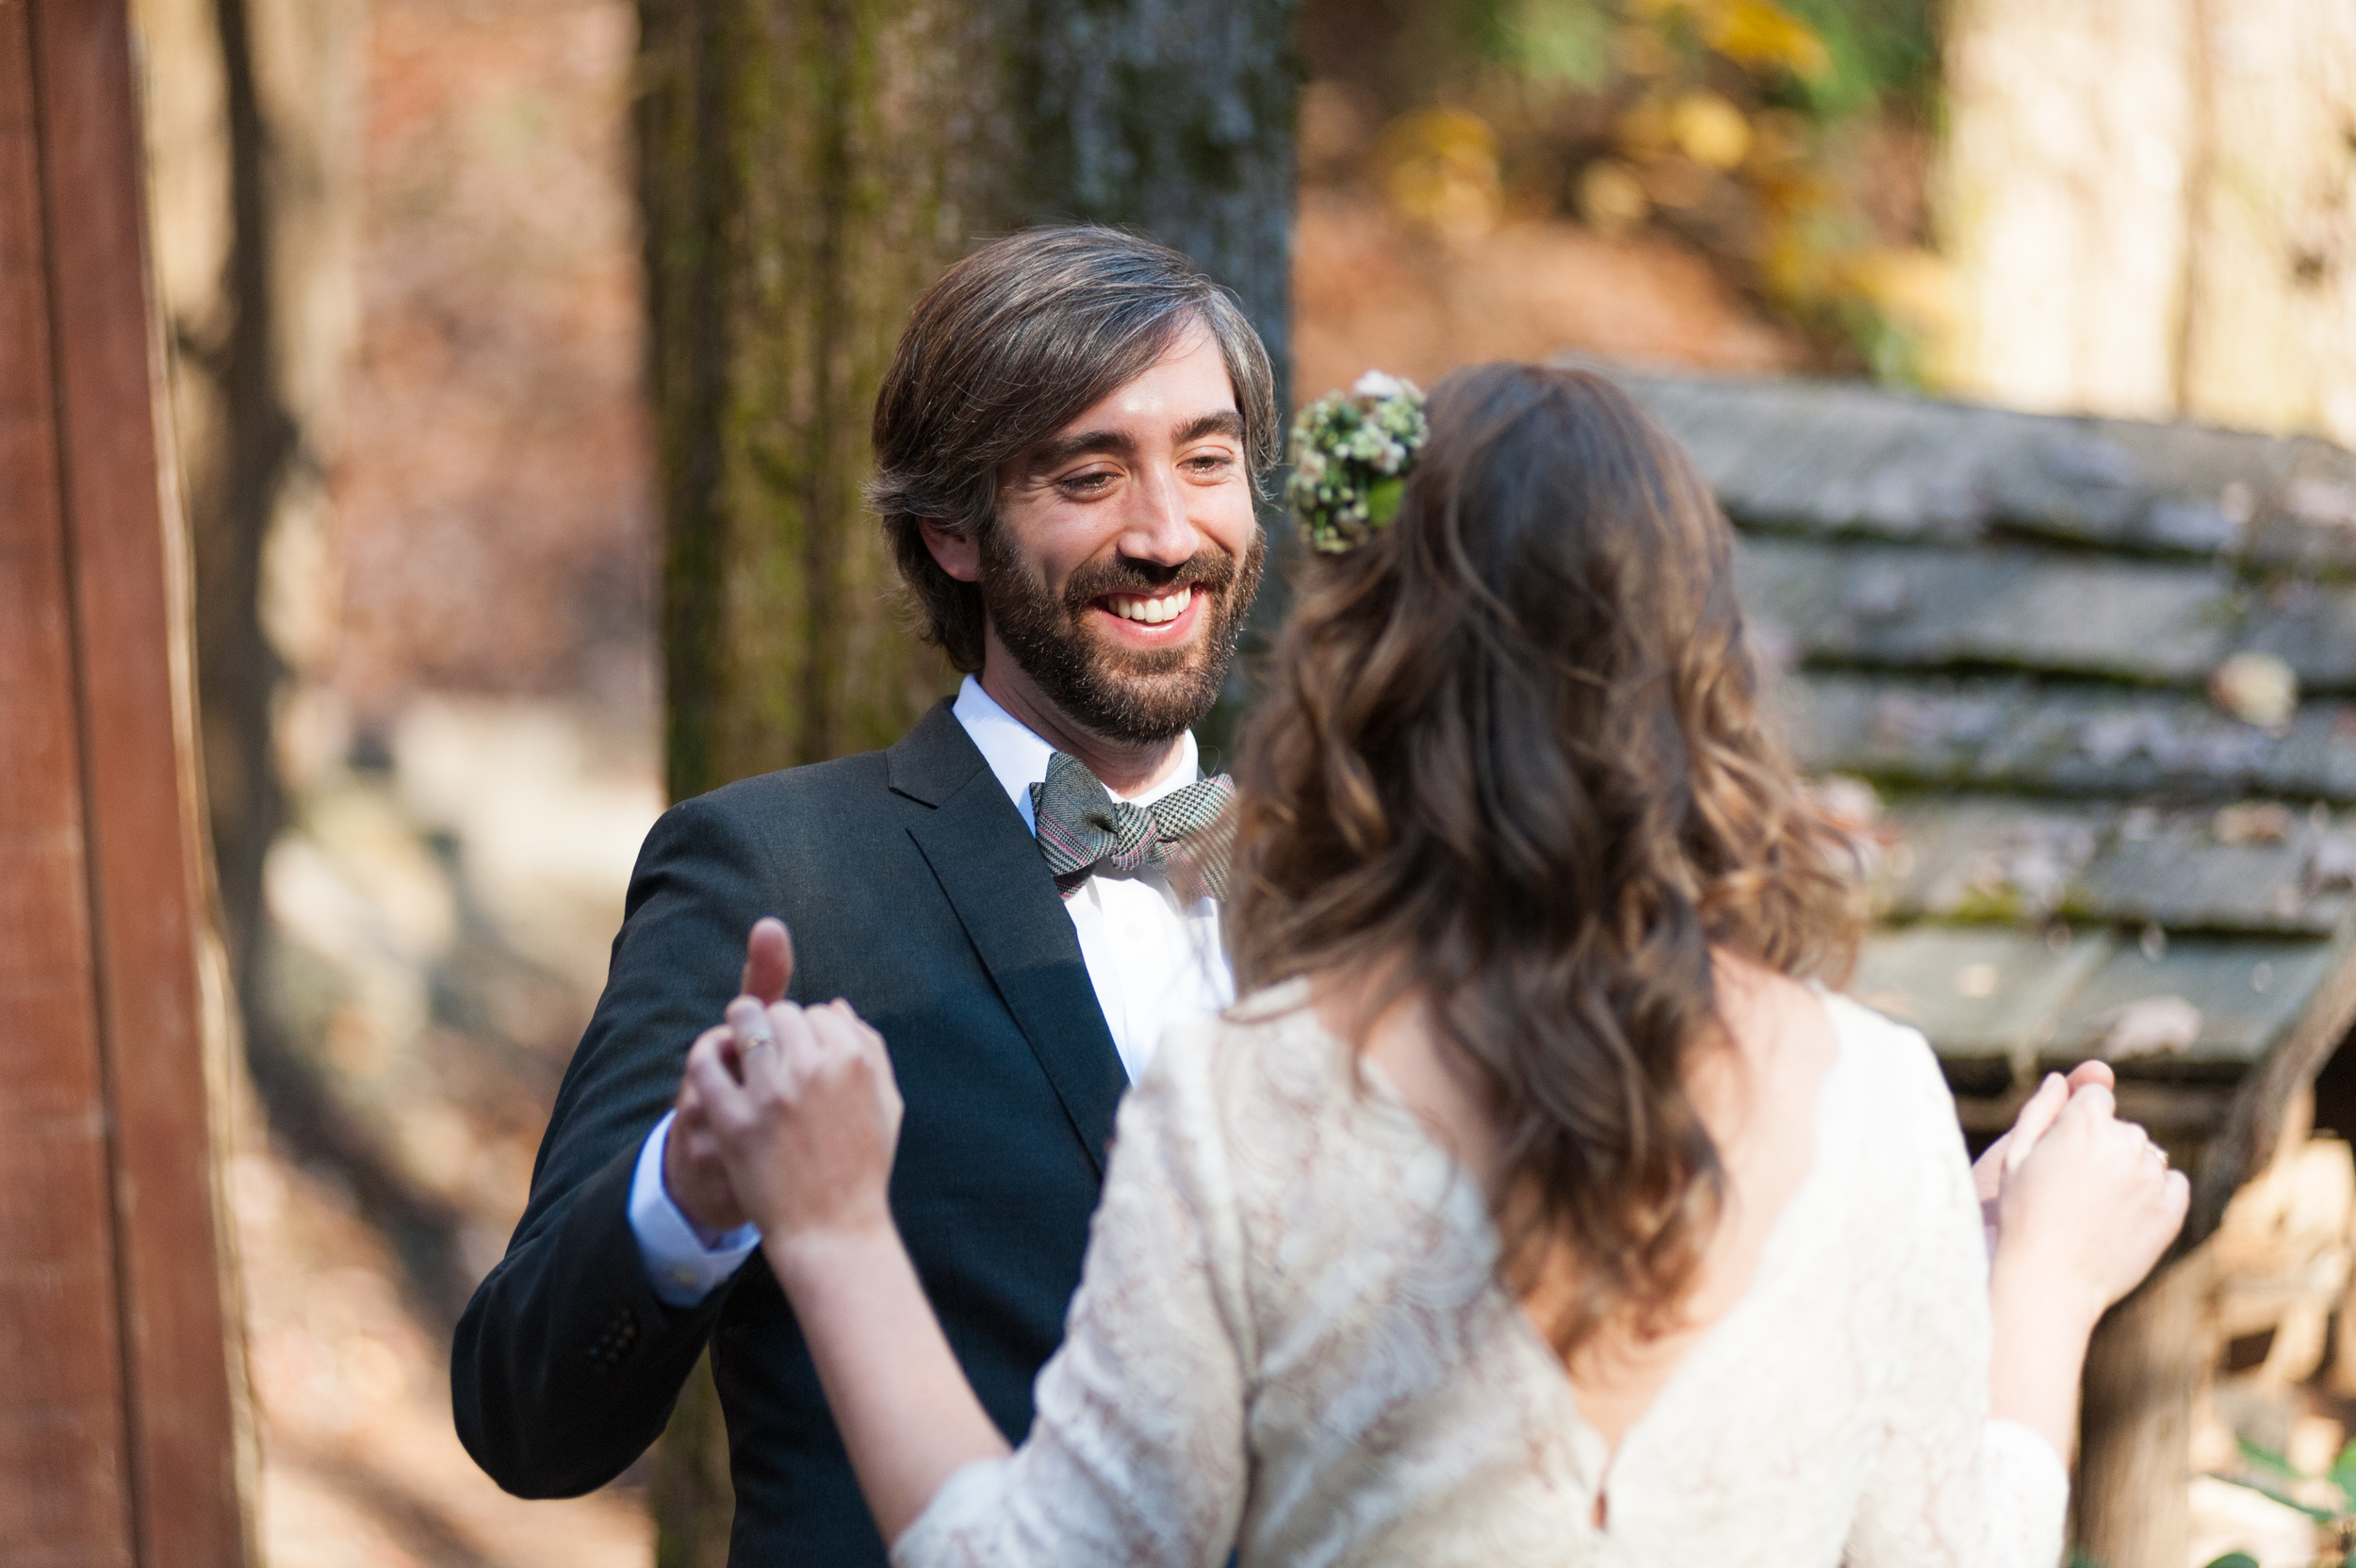 RD_20_GatlinburgWedding_GabbyDaltonPhotography.jpg